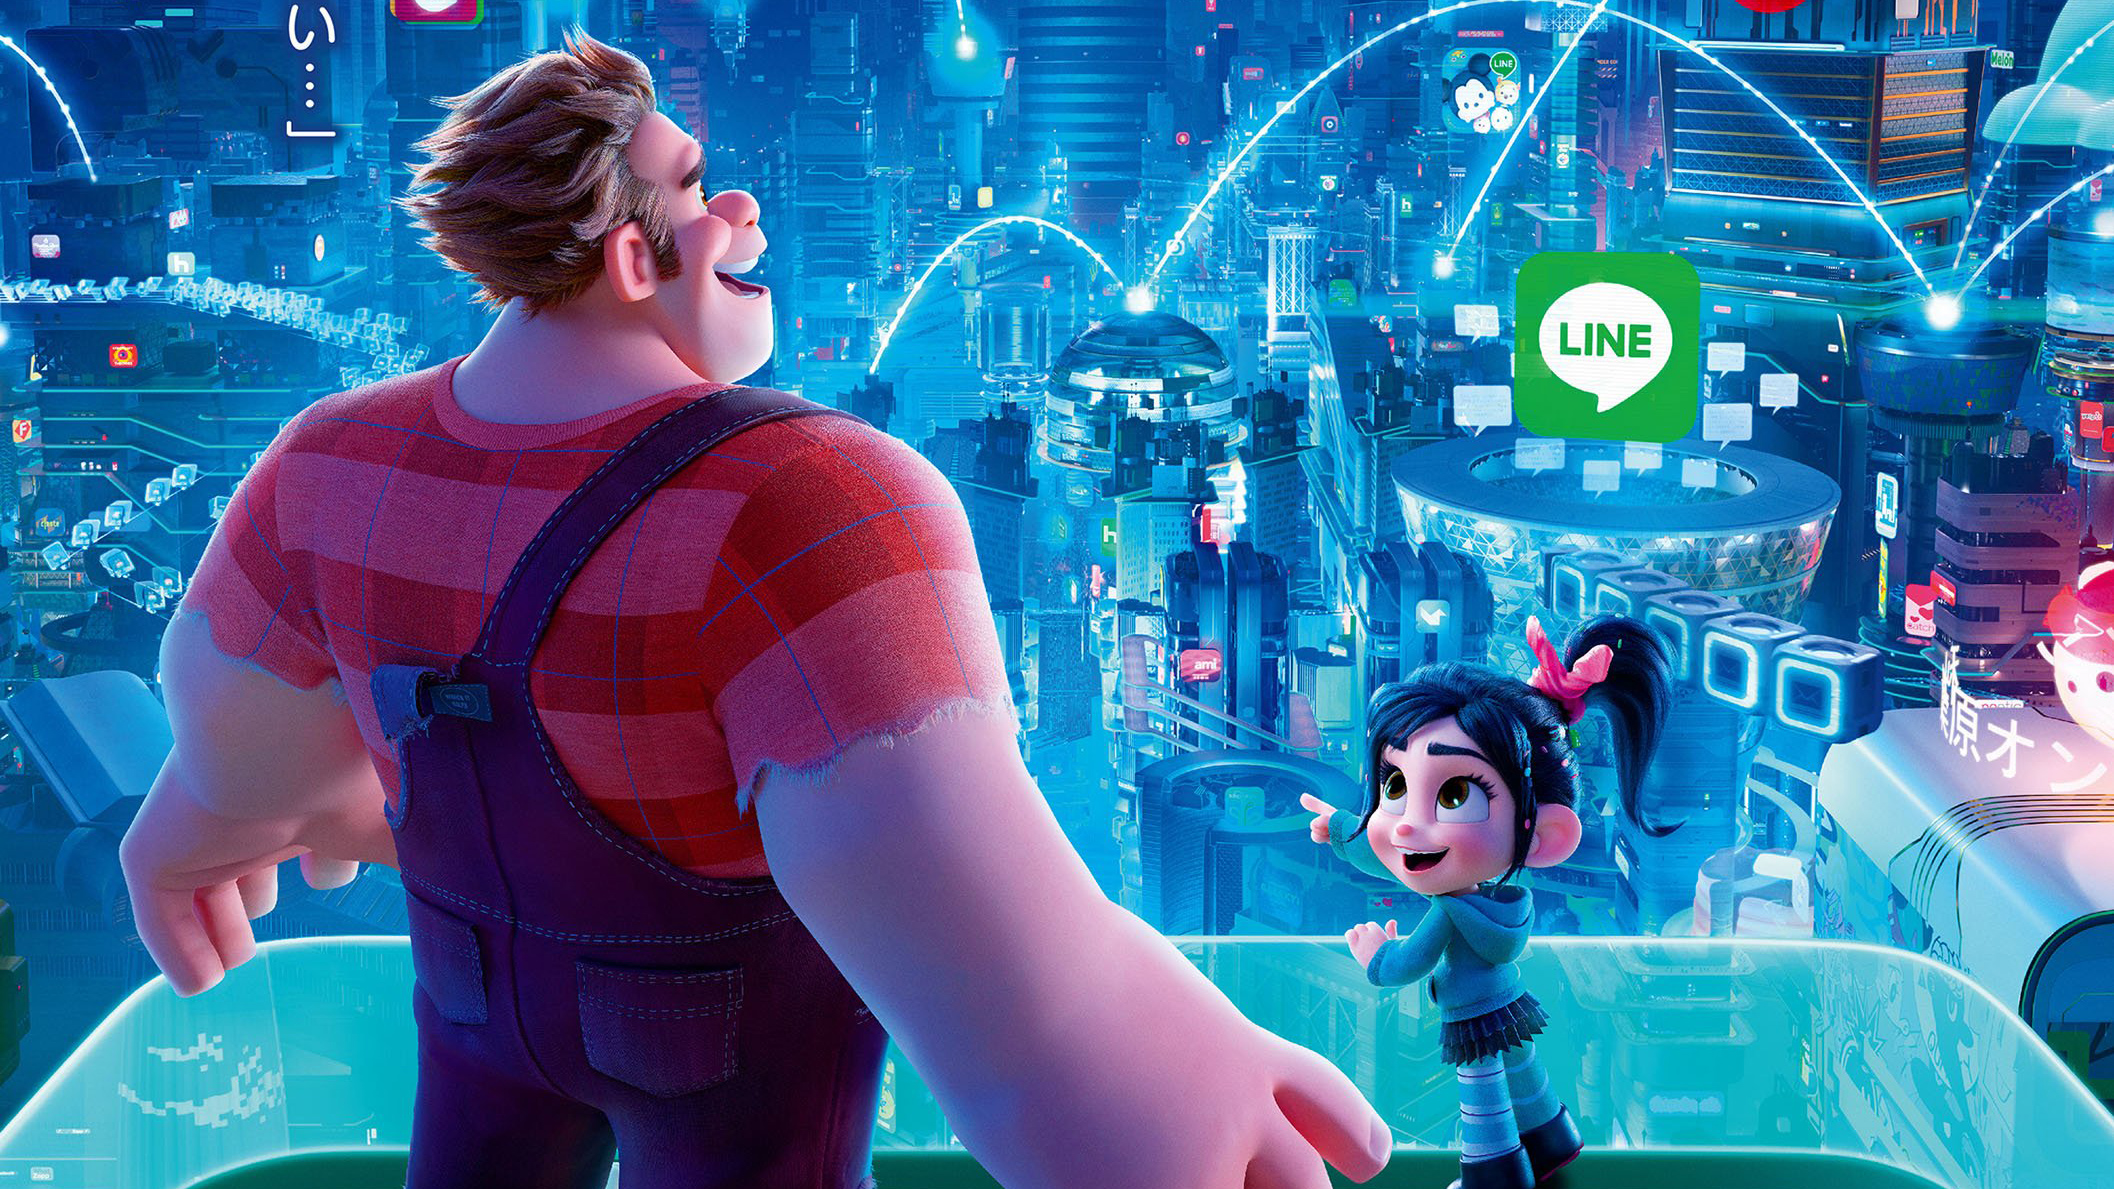 """""""Wreck it Ralph 2"""" might be too similar to """"The Emoji Movie."""" (Image via Hdqwalls)"""